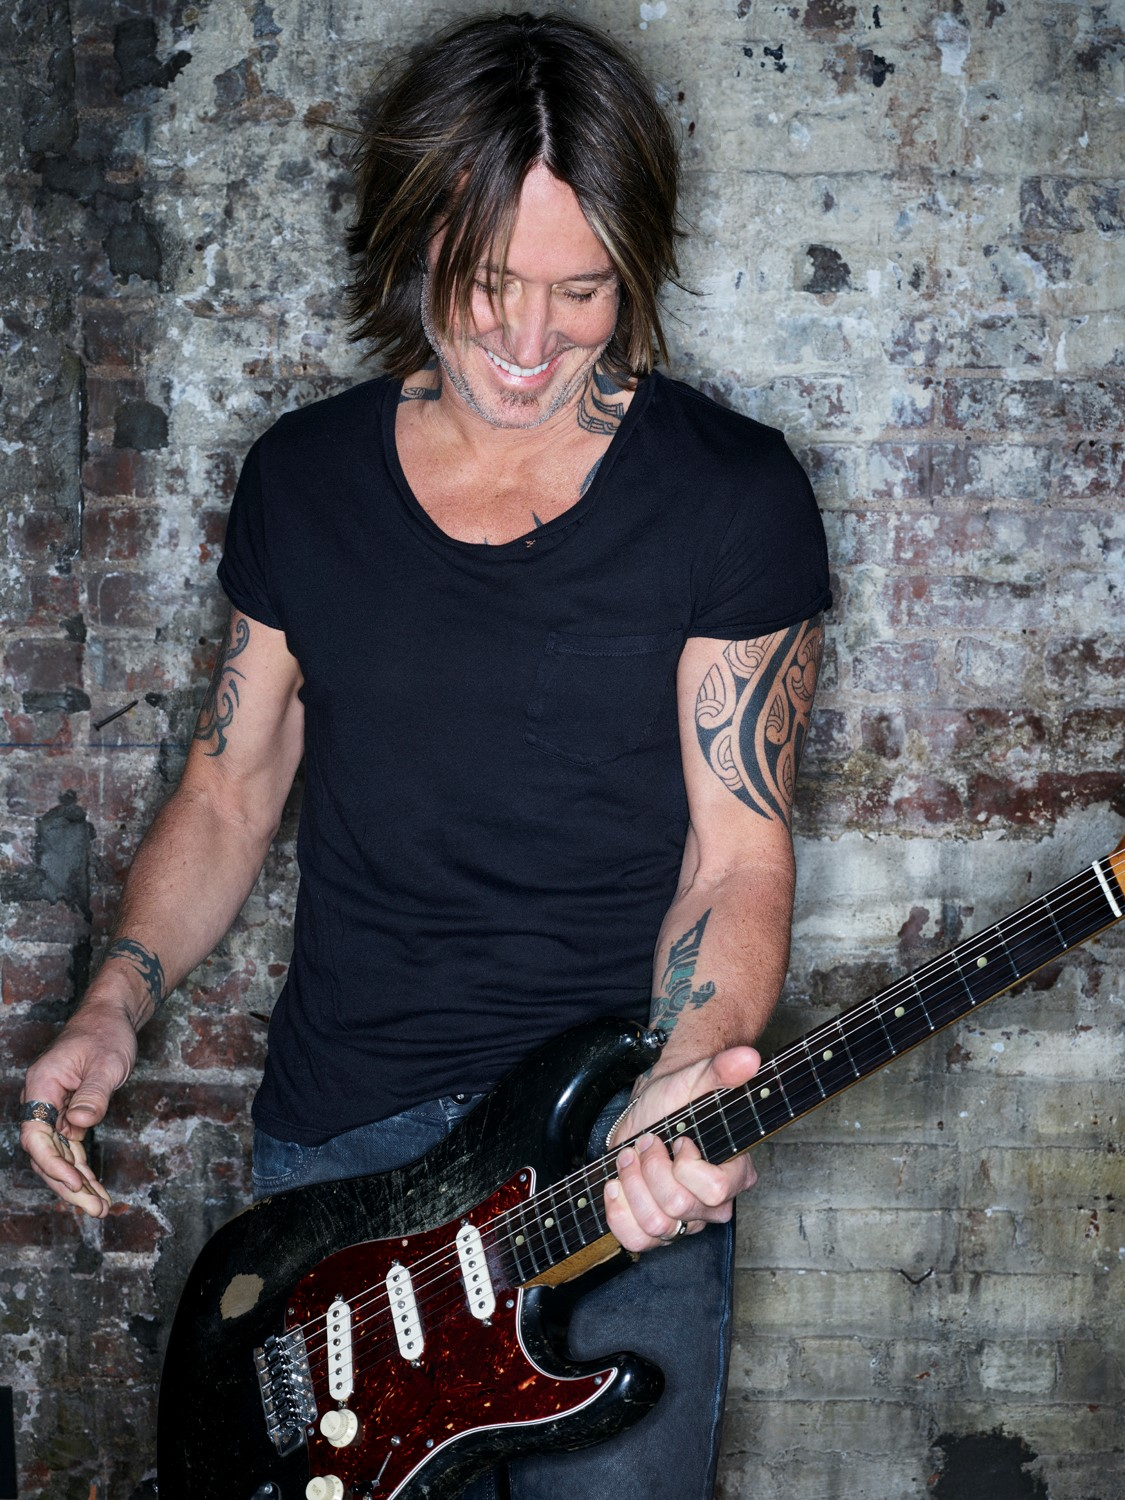 Keith Urban to Headline Nashville's New Year's Eve